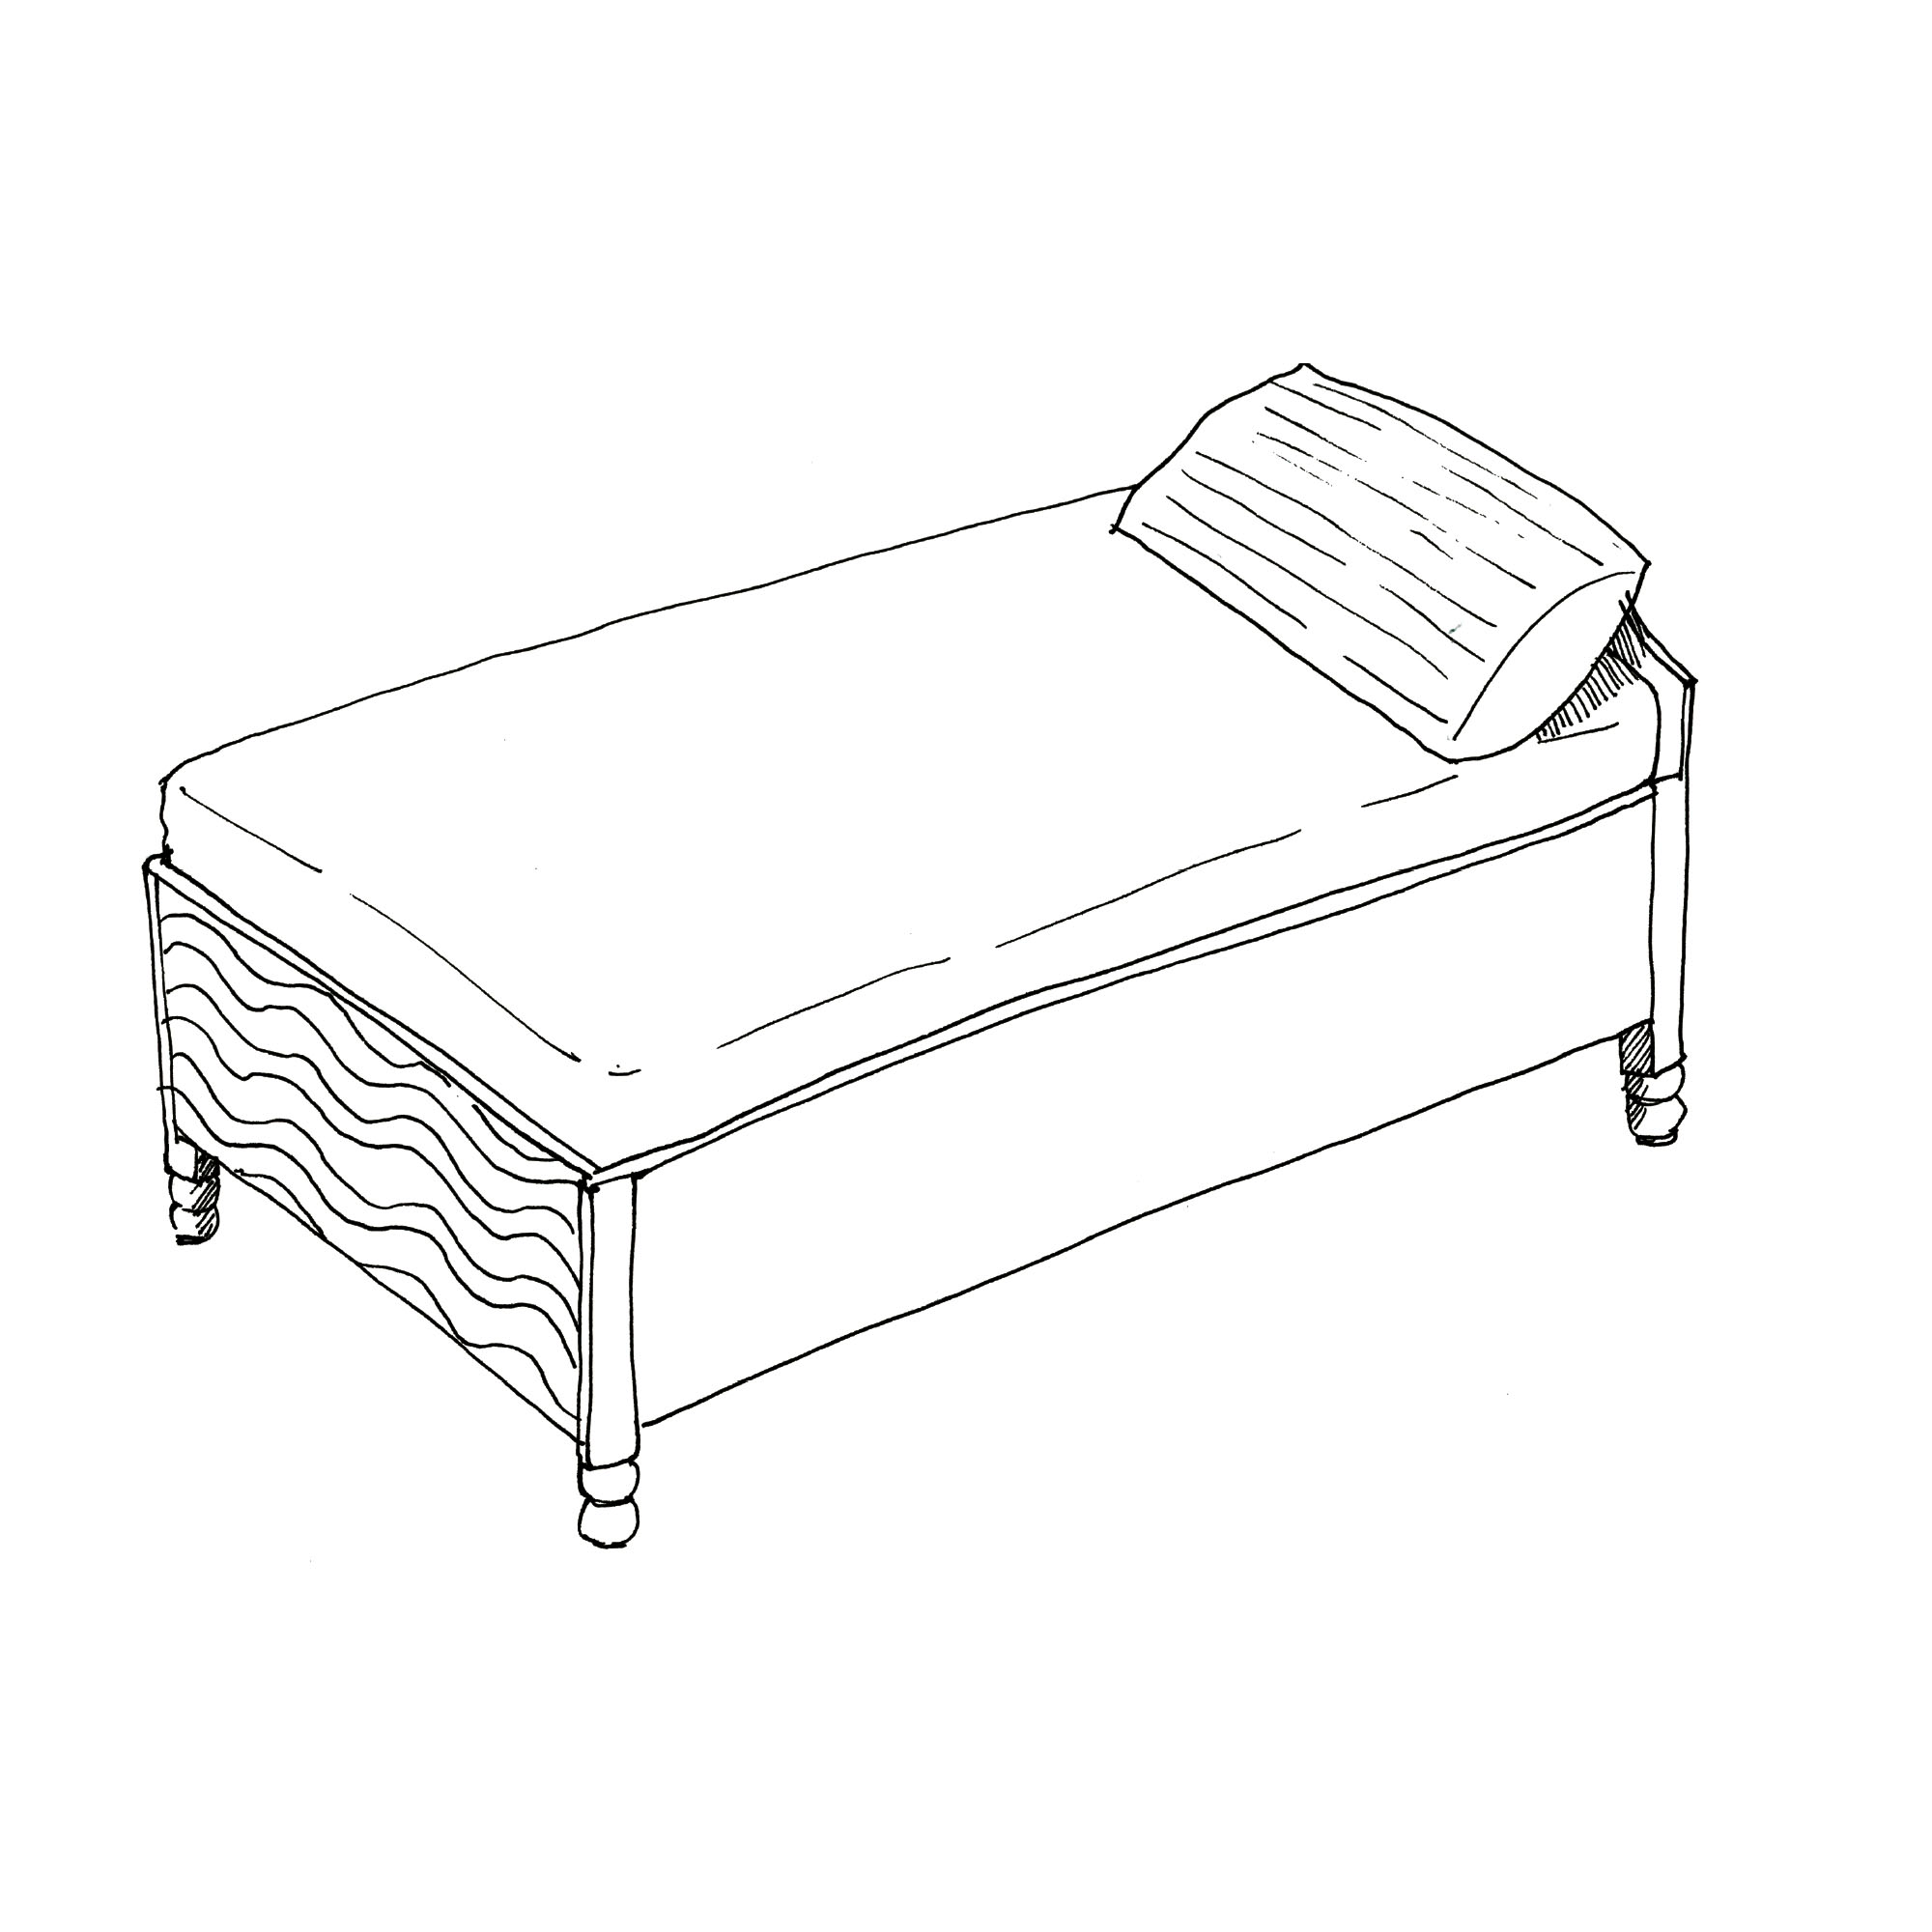 Donation Gift: Bed